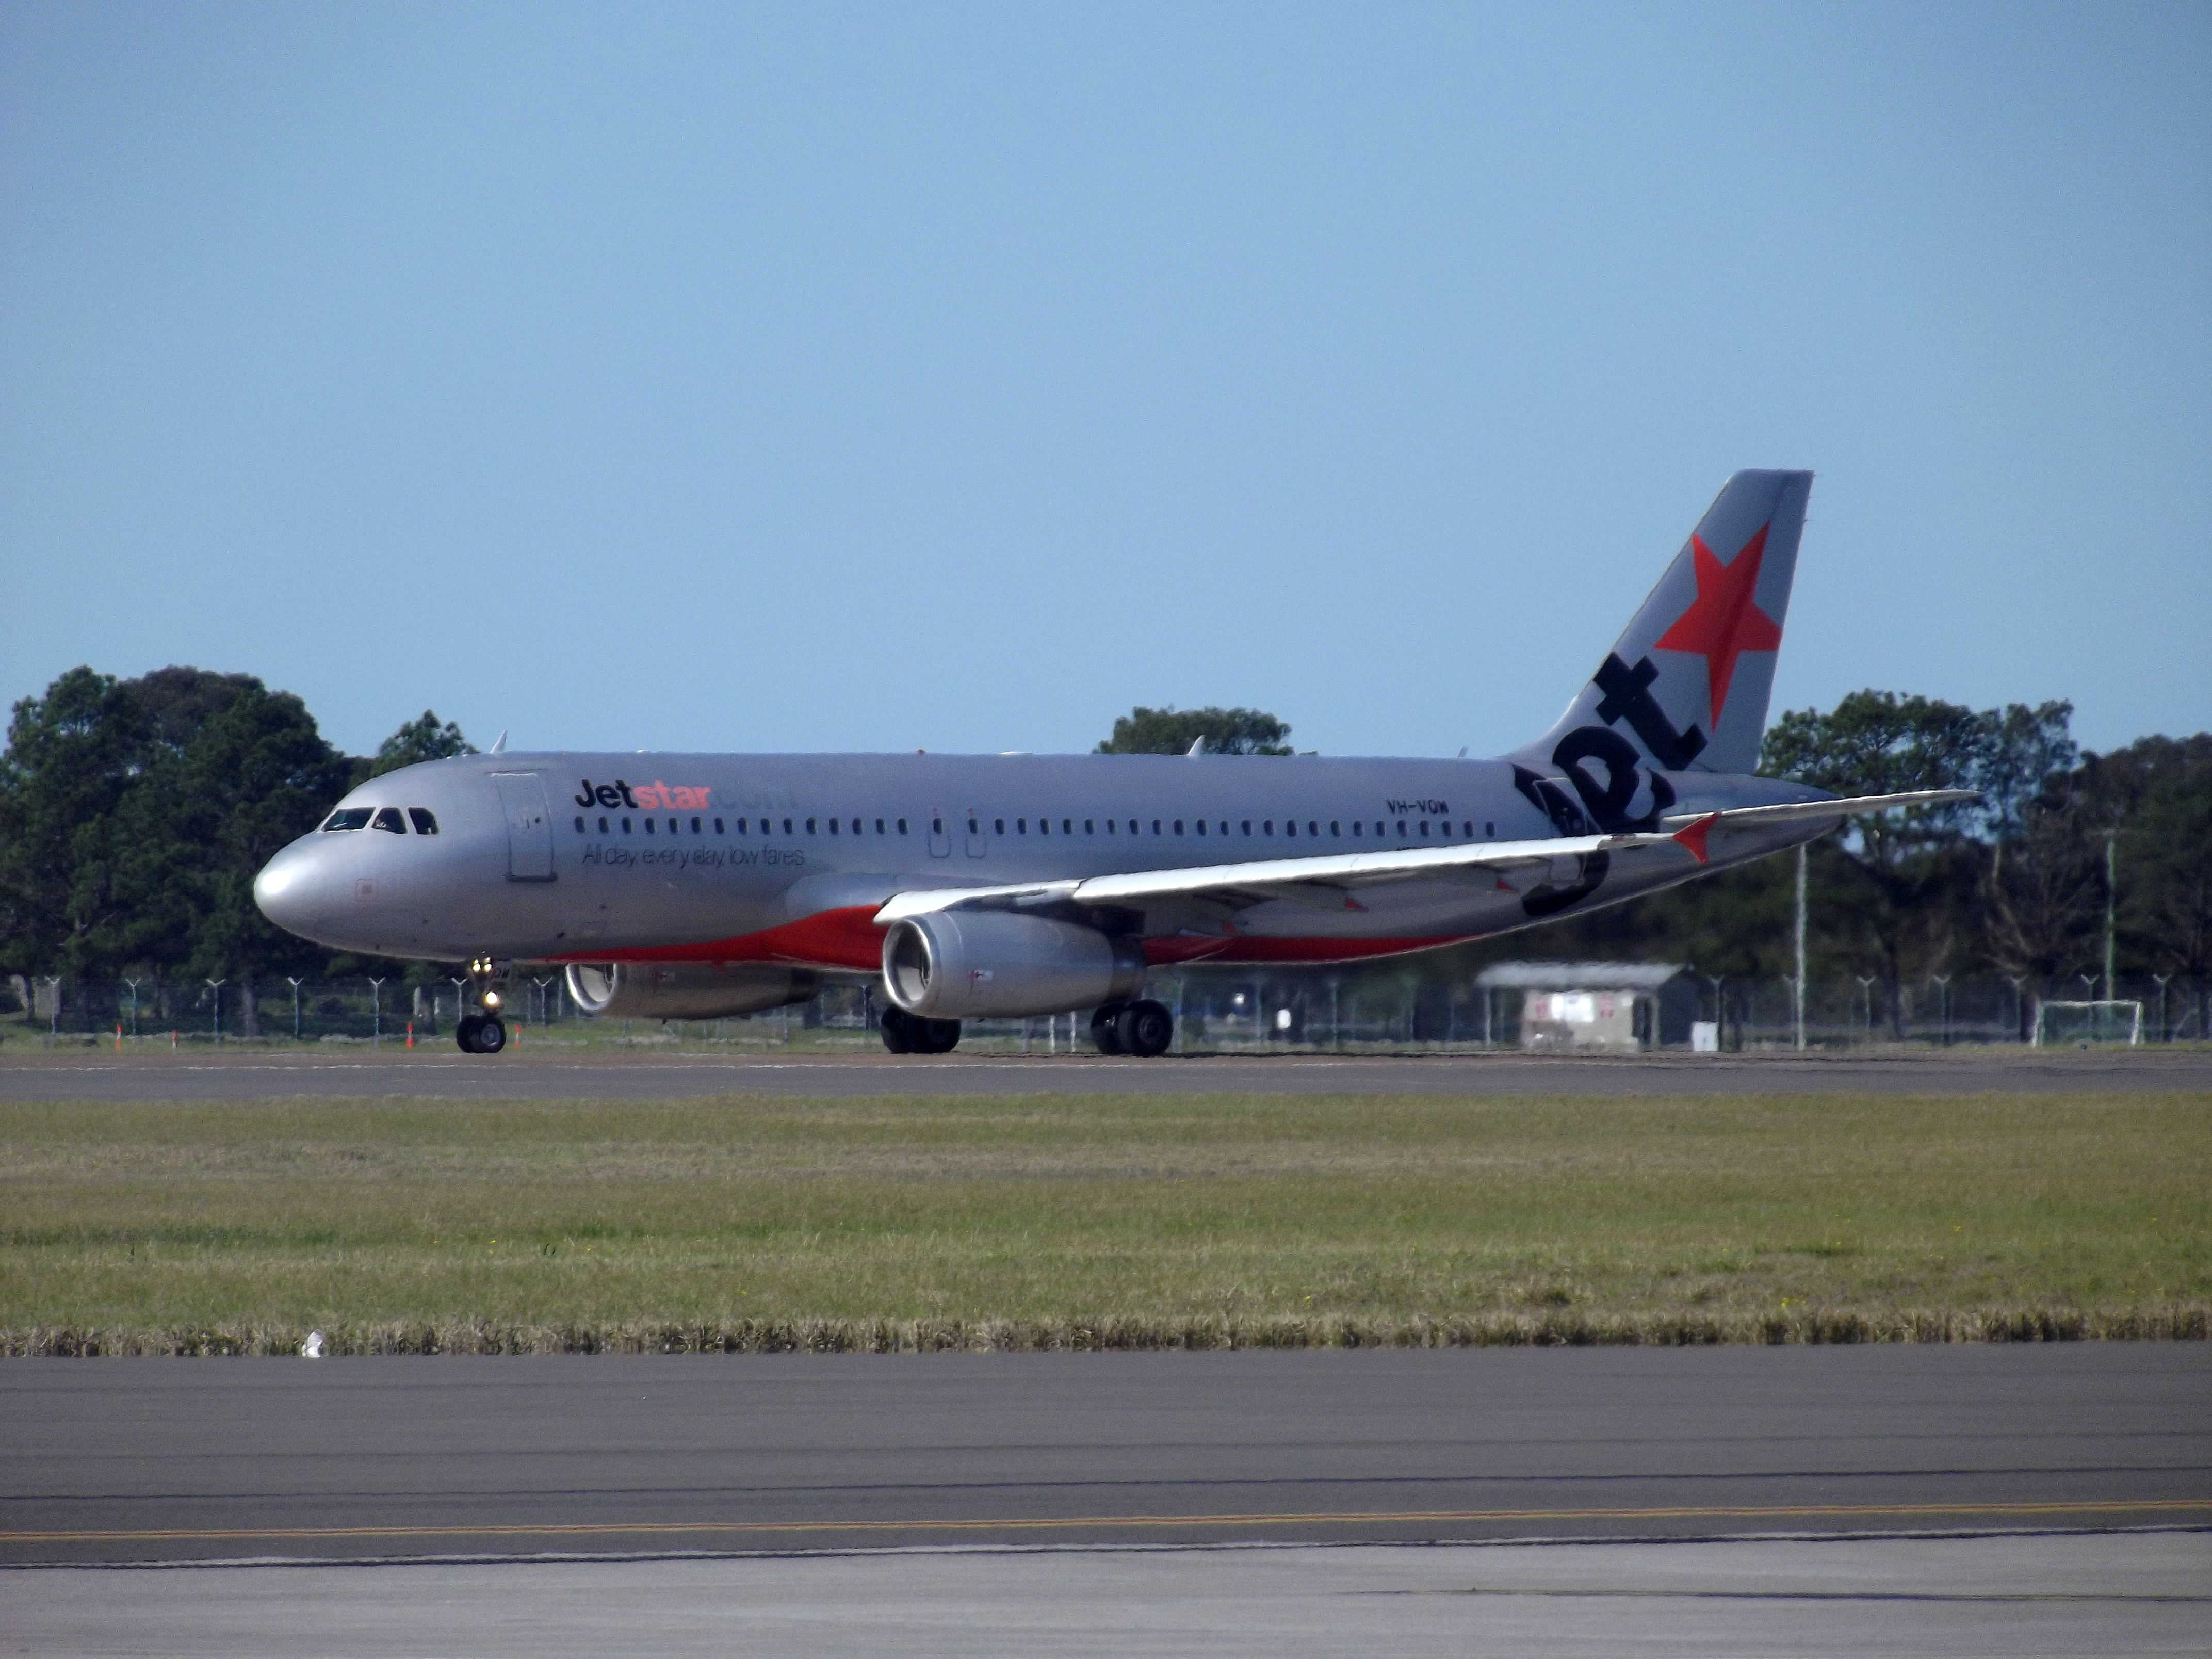 jetstar flights - photo #18